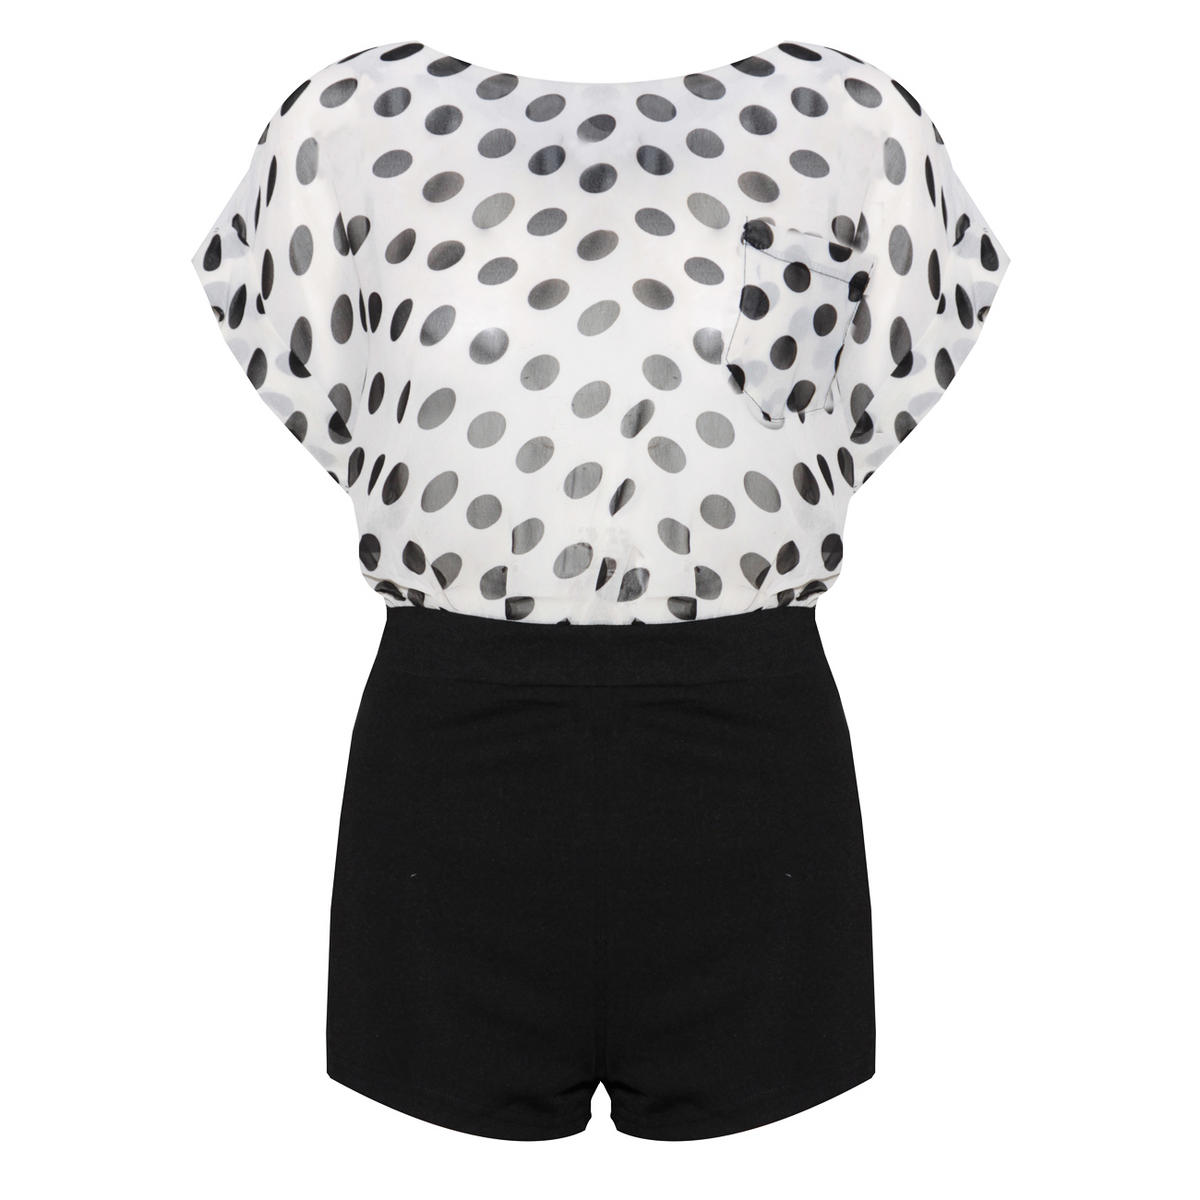 SIZE 12 ONLY Monochrome Polka Dot Playsuit Preview